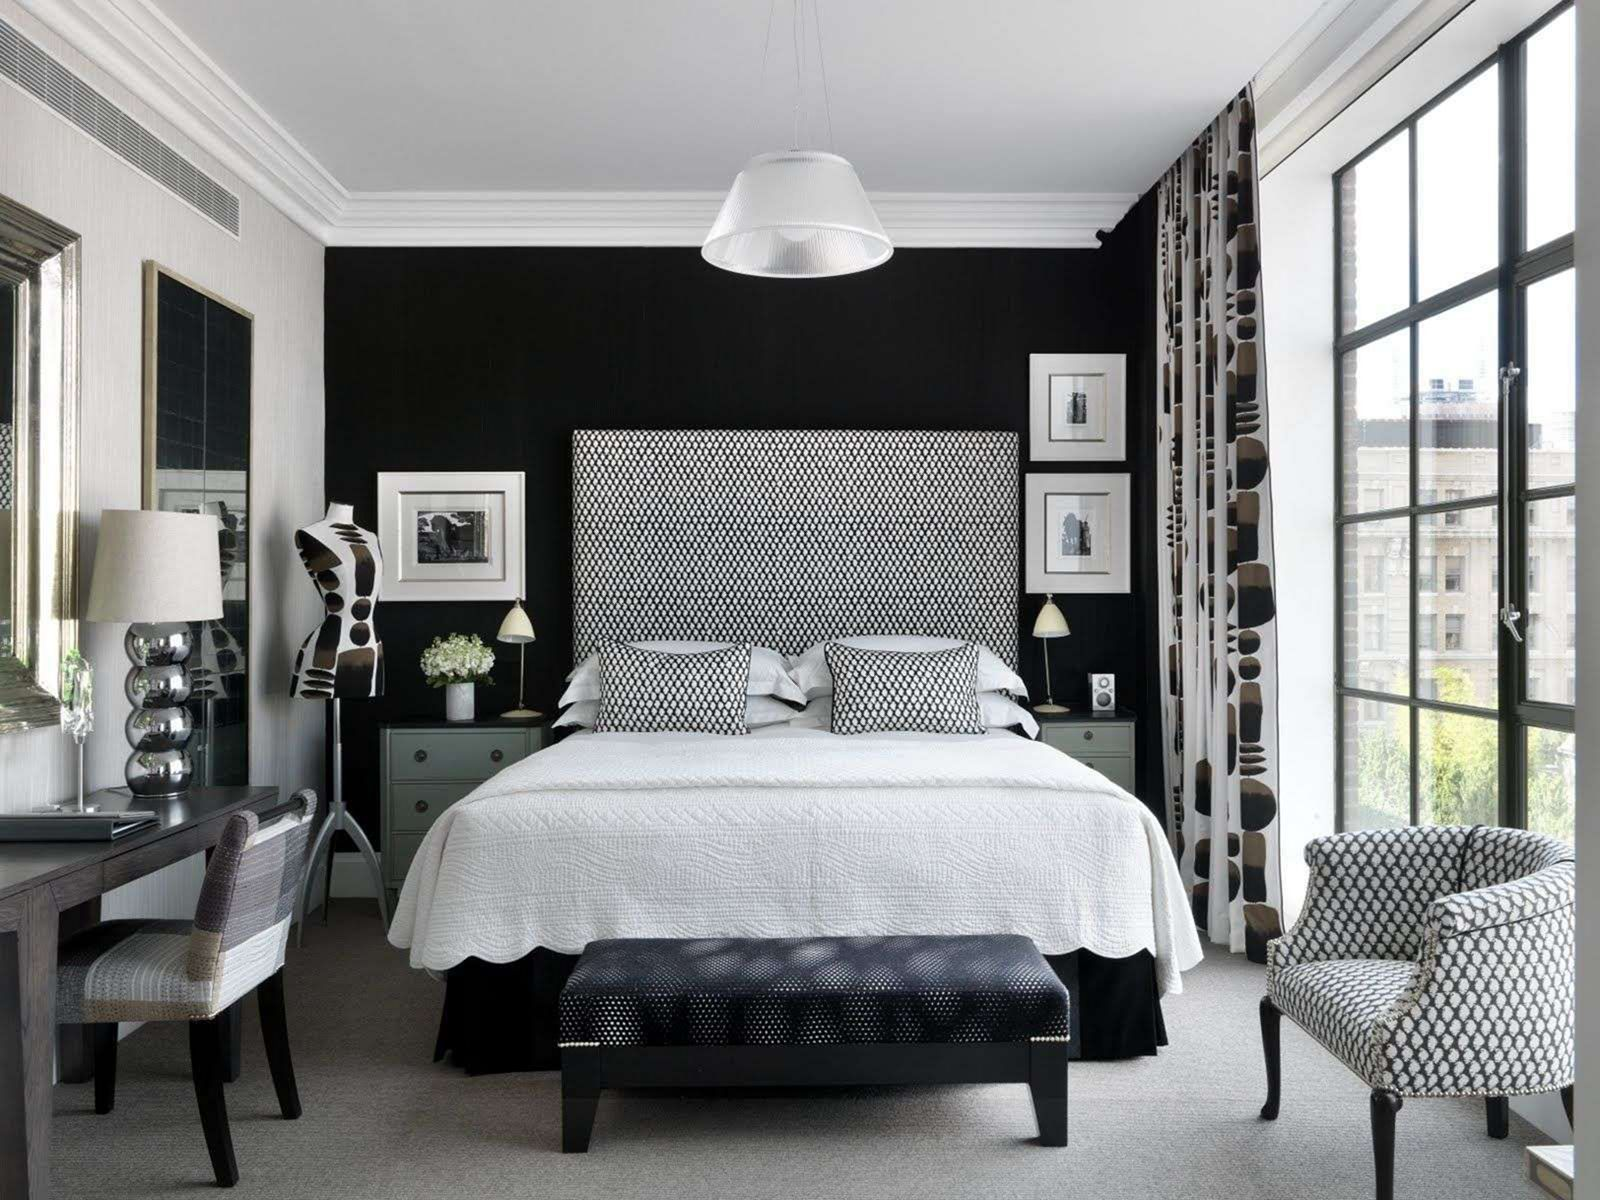 7 Extraordinary Black And White Bedroom Ideas To Inspire You In 2020 White Bedroom Decor Black Walls Bedroom Bedroom Furniture Placement